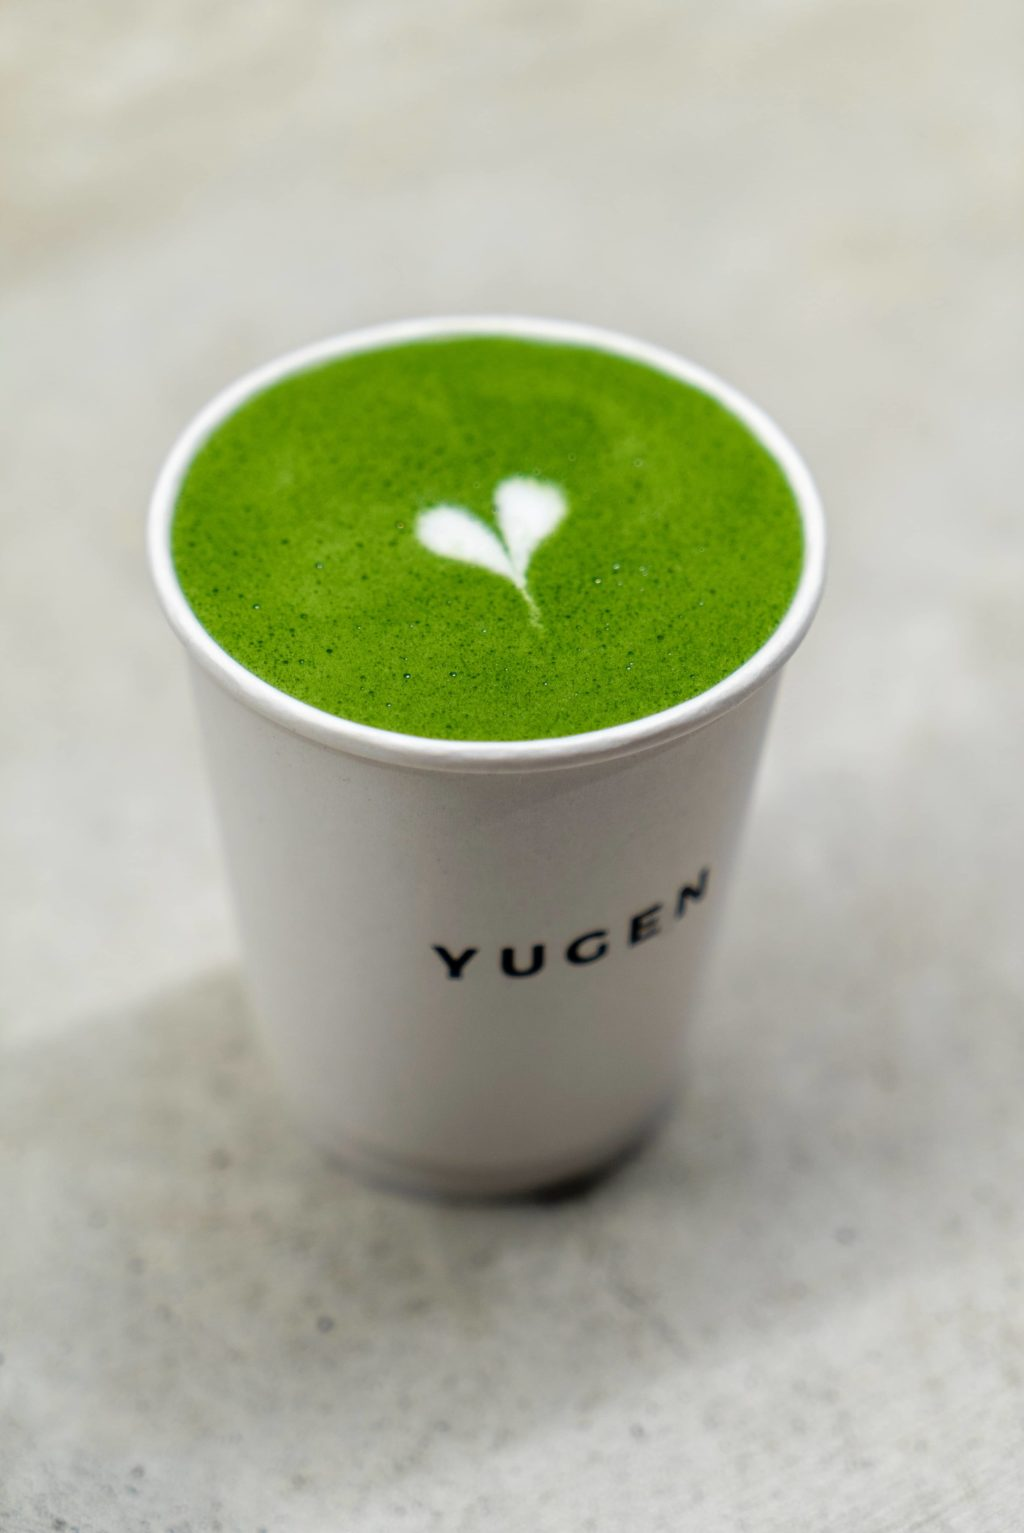 IS GREEN COFFEE REALLY A HEALTHY DRINK?